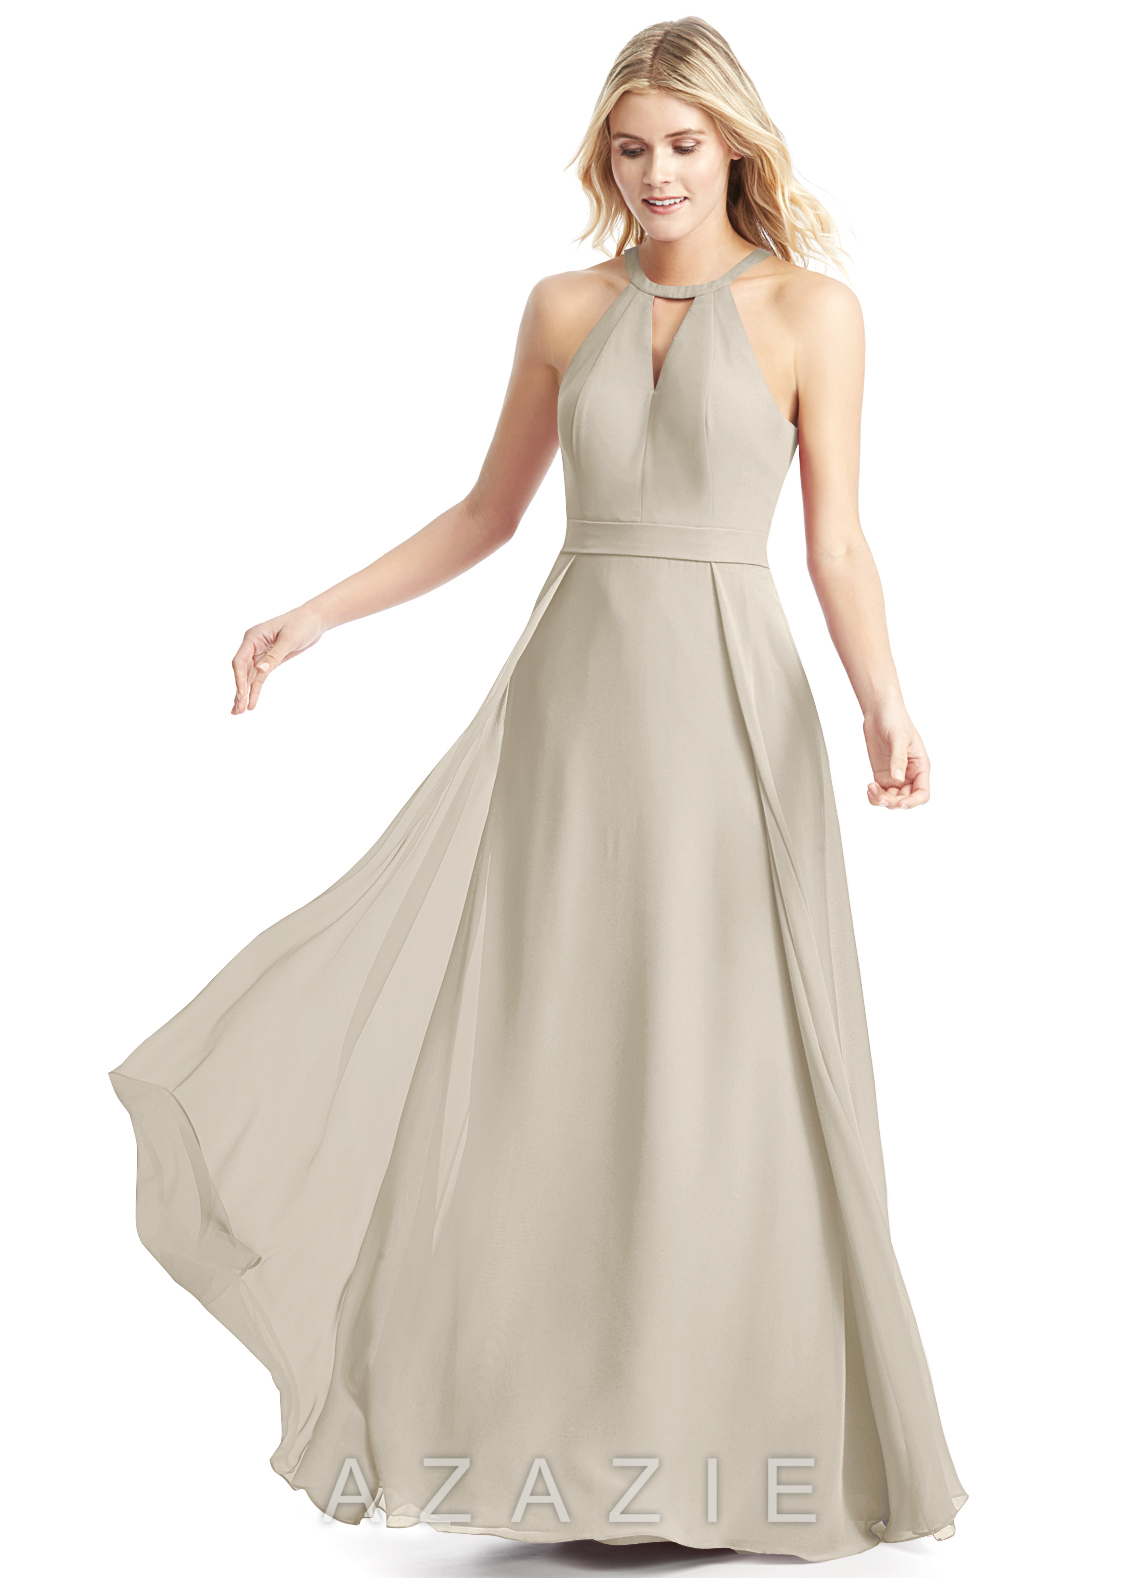 Azazie melody bridesmaid dress azazie color taupe ombrellifo Choice Image